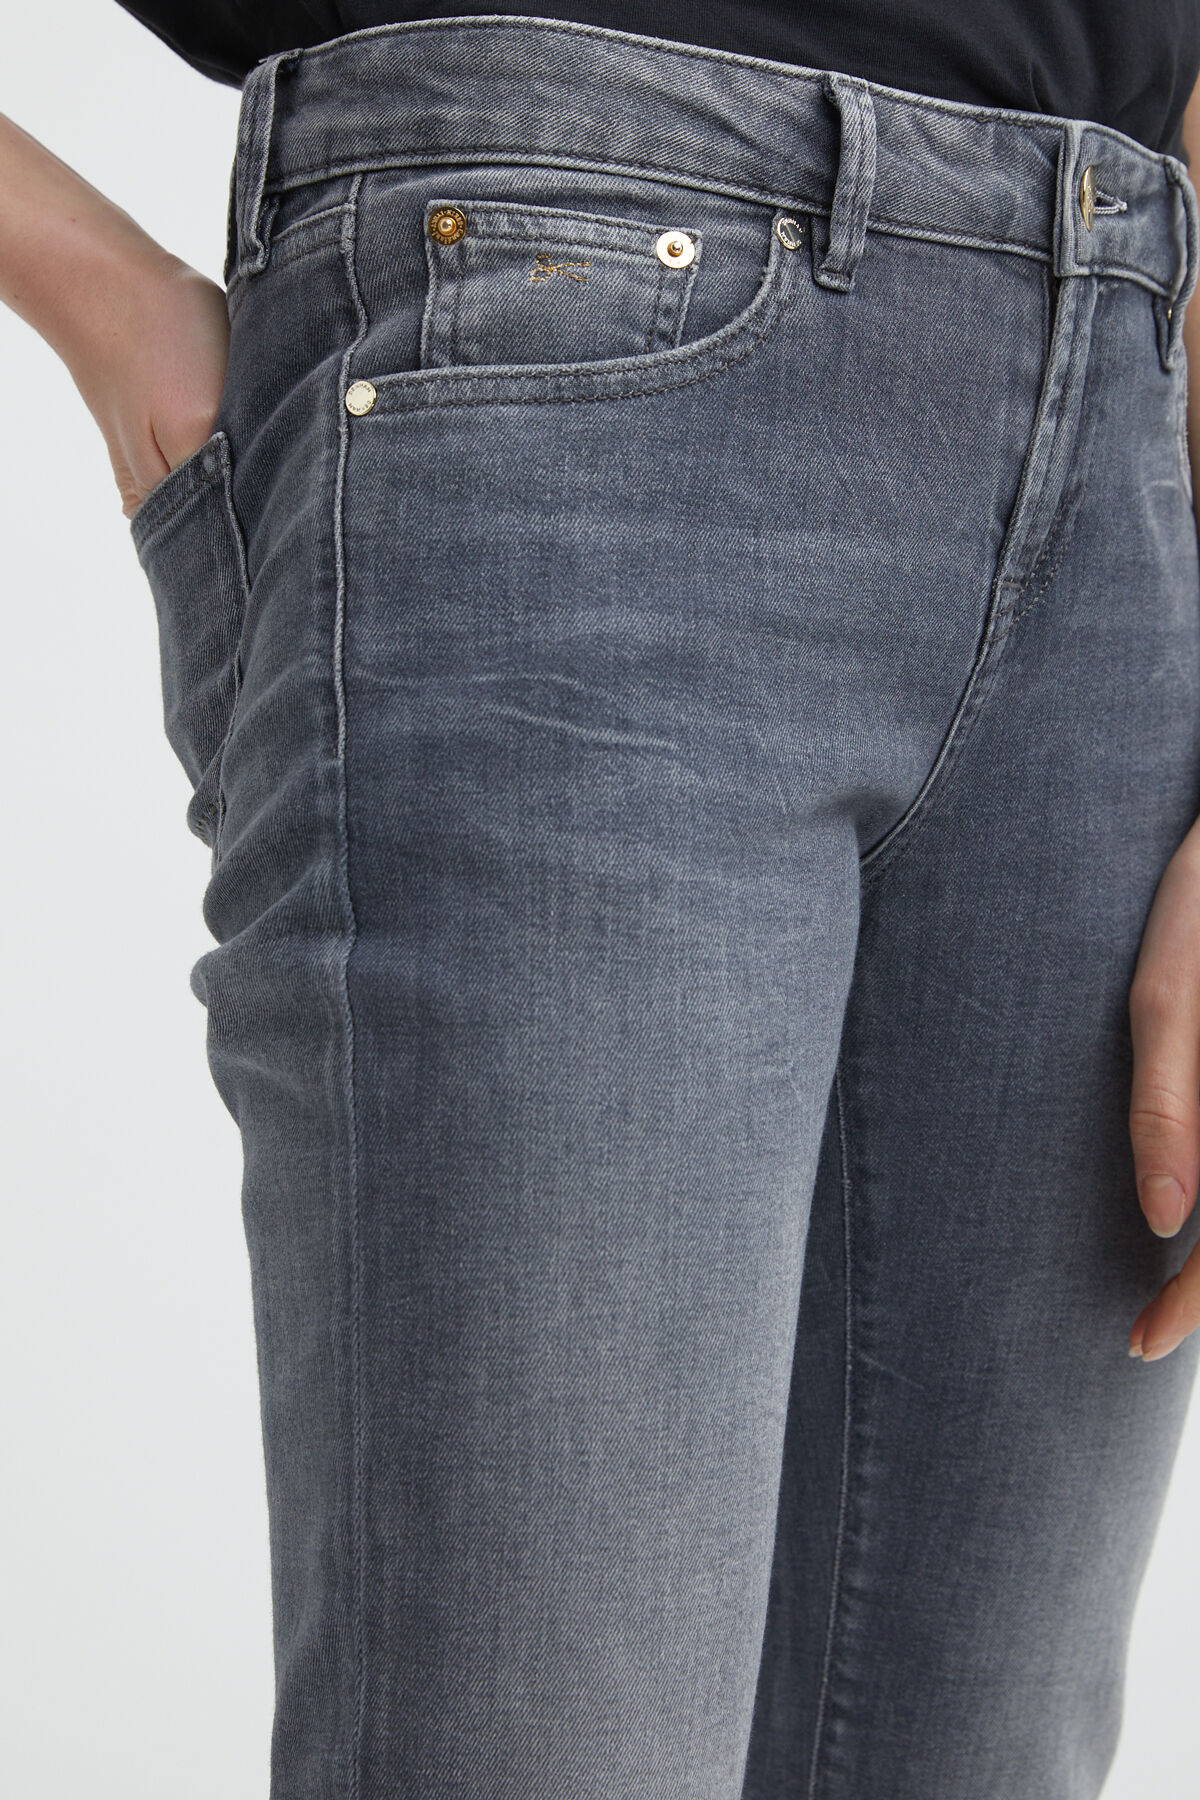 LIZ ANKLE Soft Fade, Grey Denim - Straight Fit